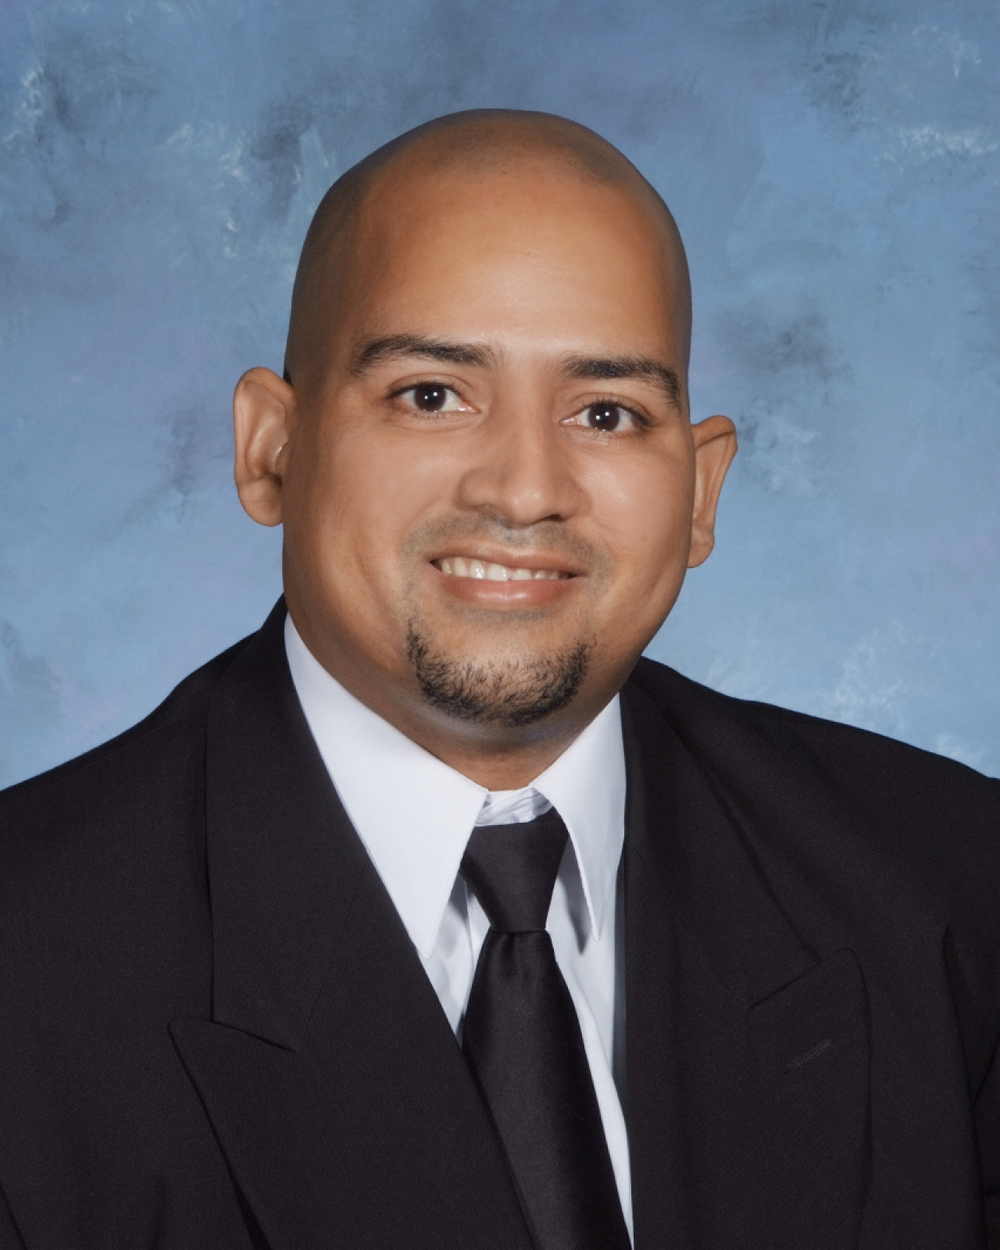 Jose Vasquez 9th and 10th Grade Guidance Counselor 212-647-1983 x2261